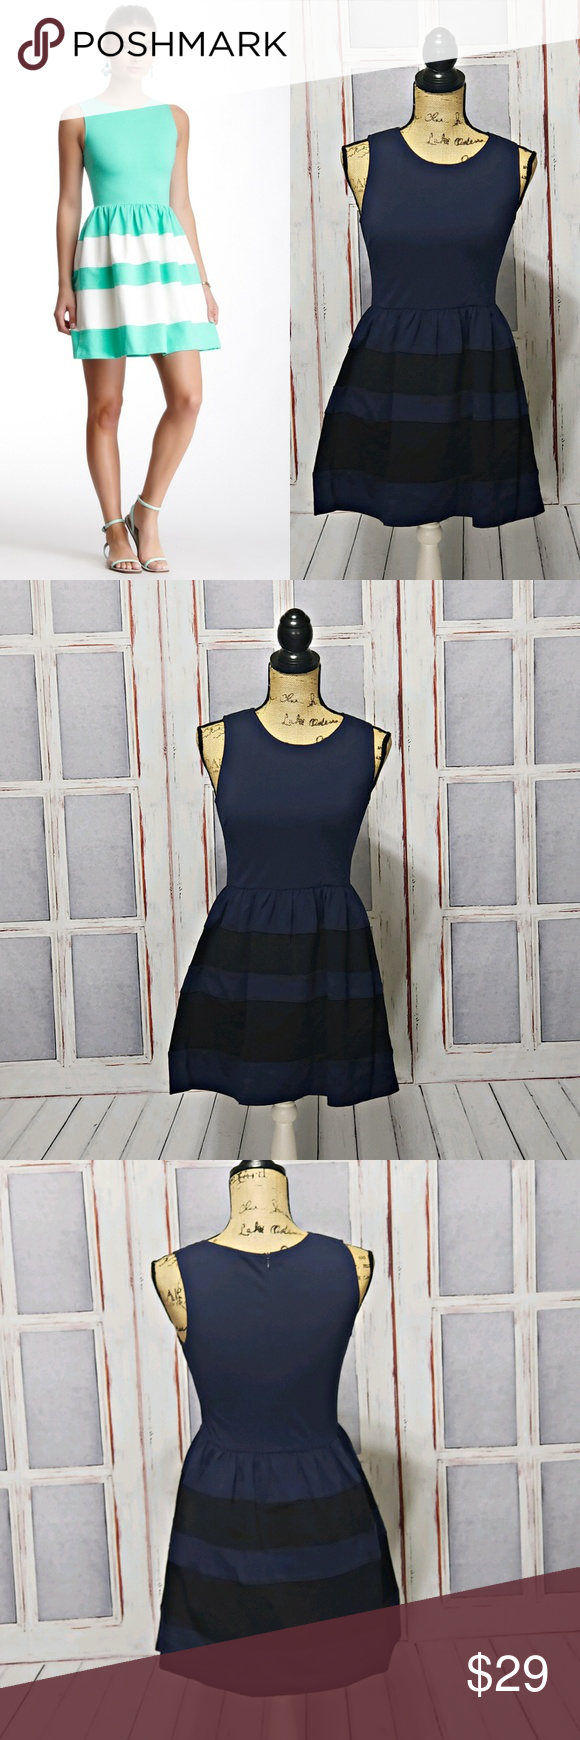 Clothing, Shoes & Accessories Euc!!!!! Dresses Love Ady Sleeveless Dress Black And Gray Striped Size Medium